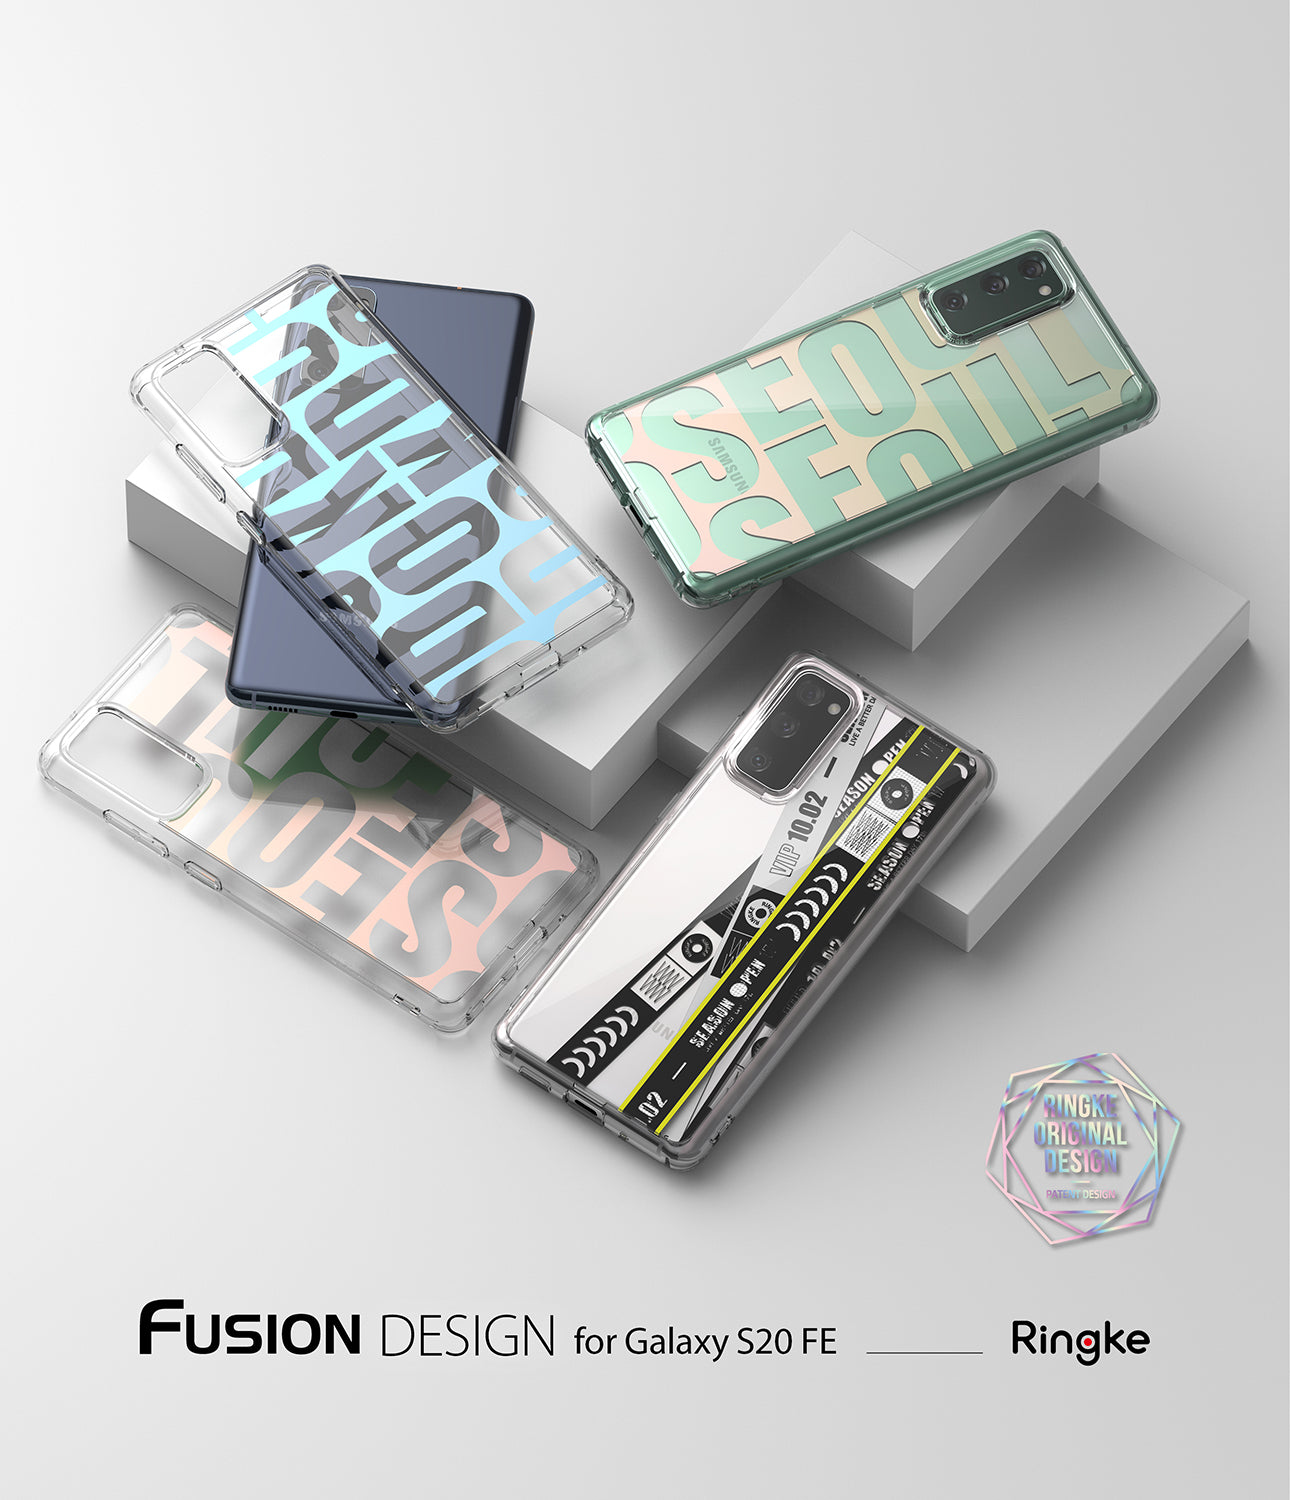 ringke fusion design case for samsung galaxy s20 fe - ticket band